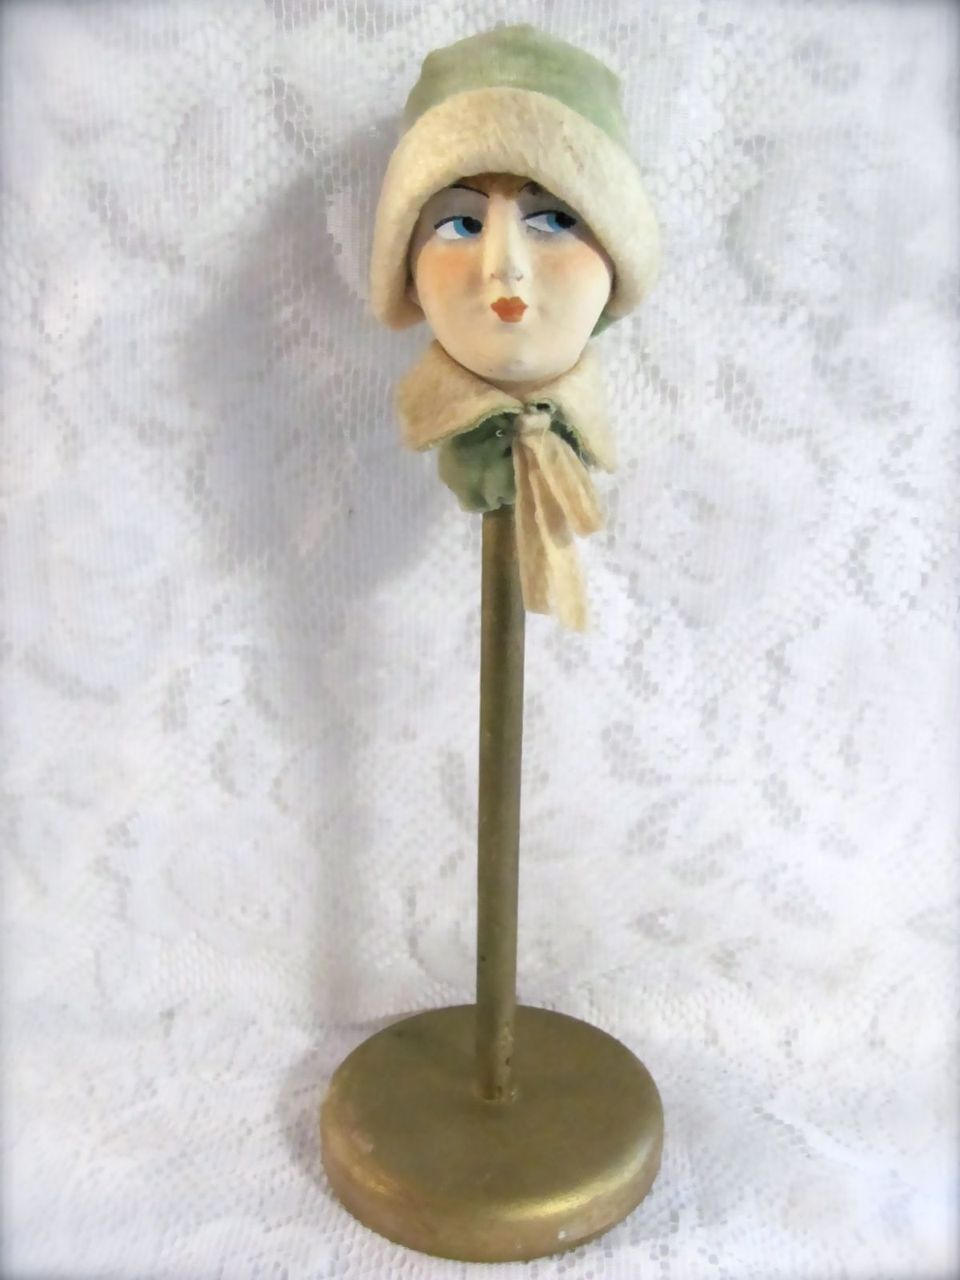 a387d4d8a07 Flapper Doll Head Hat Stand Vintage 1920s from barbgrrlzdolls on Ruby Lane